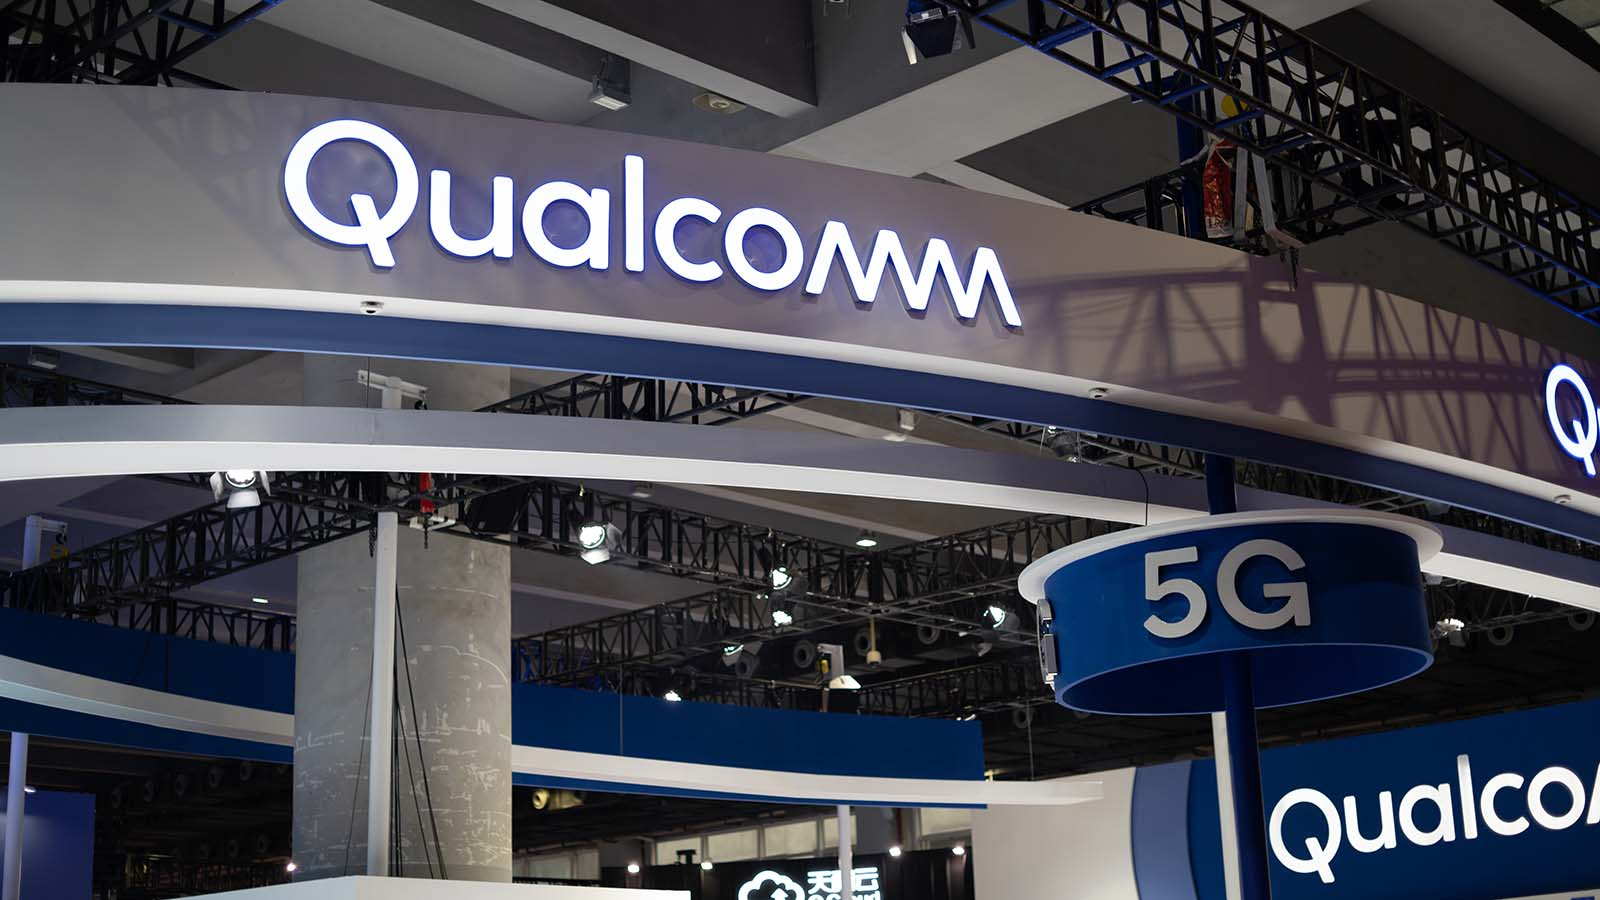 Buying QCOM Stock Is a Great Move Based on Its 5G Future Alone